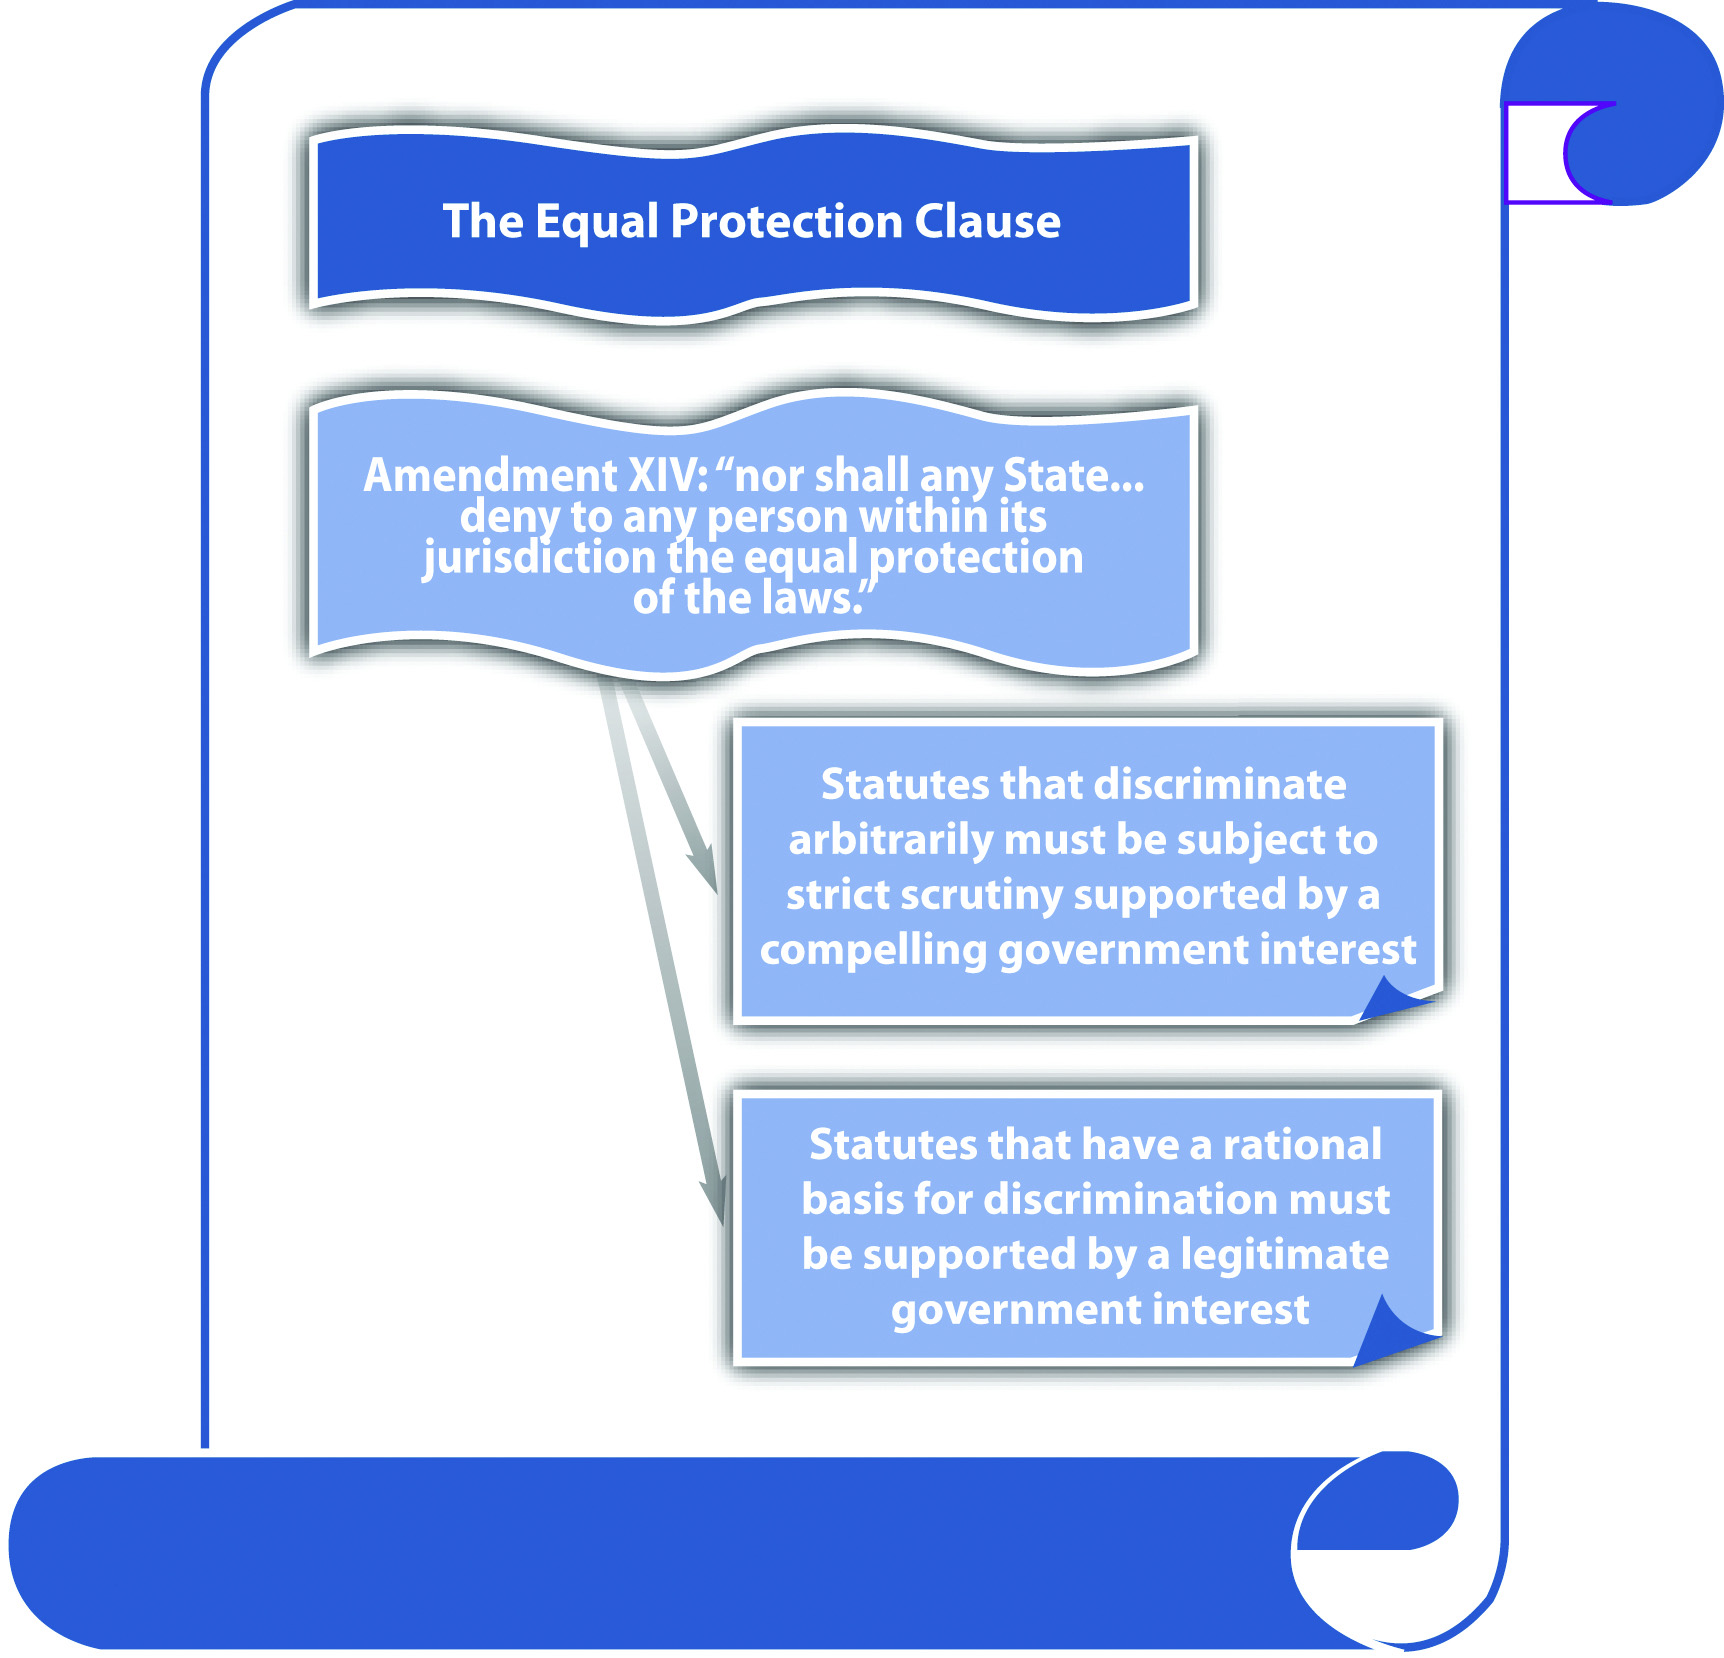 The Equal Protection Clause